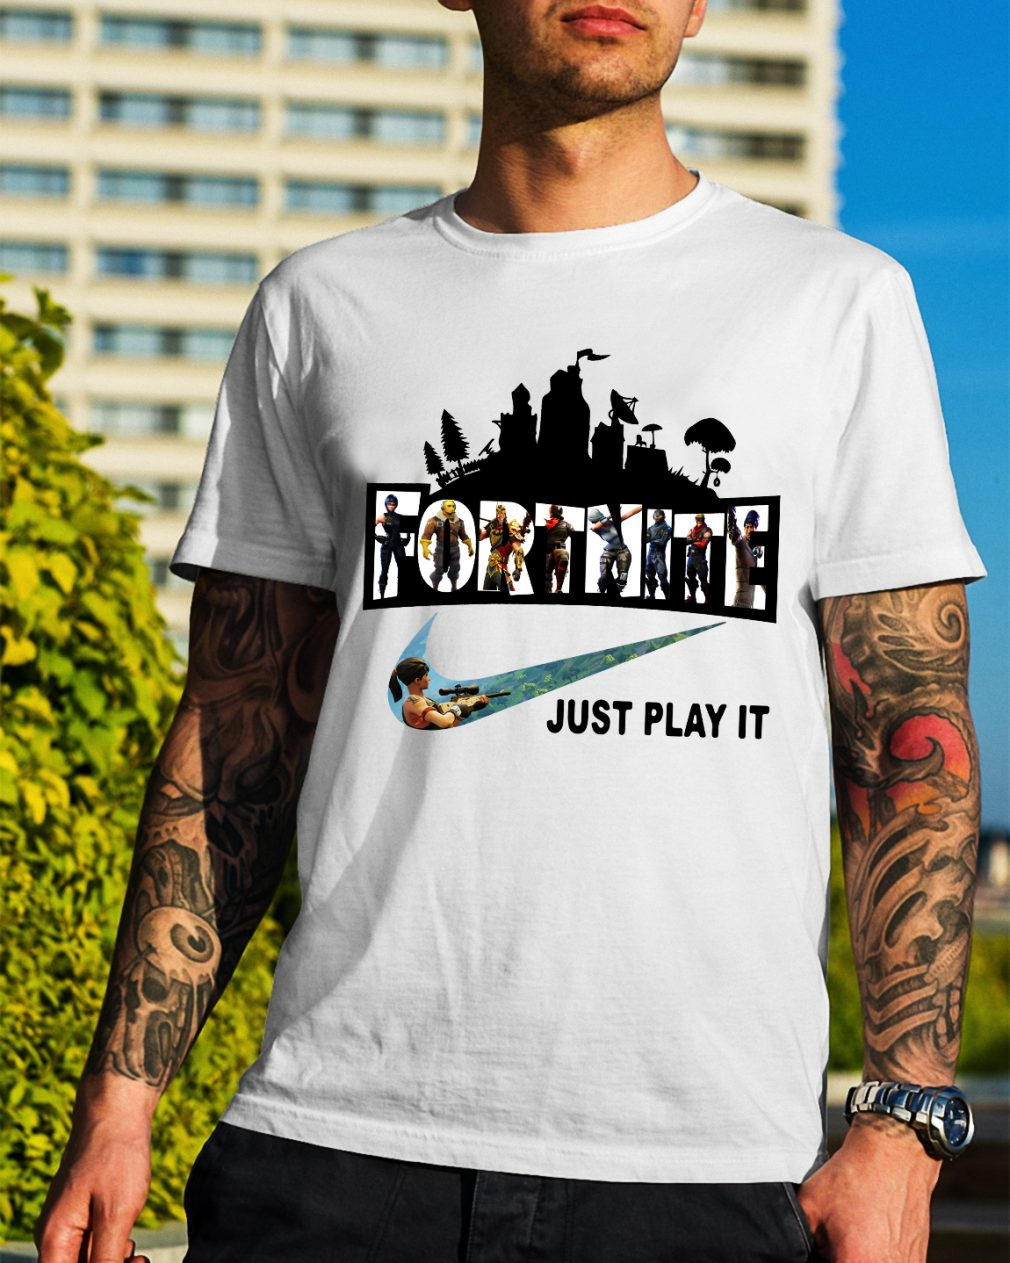 Fortnite Battle Royale and Nike it just play it shirt